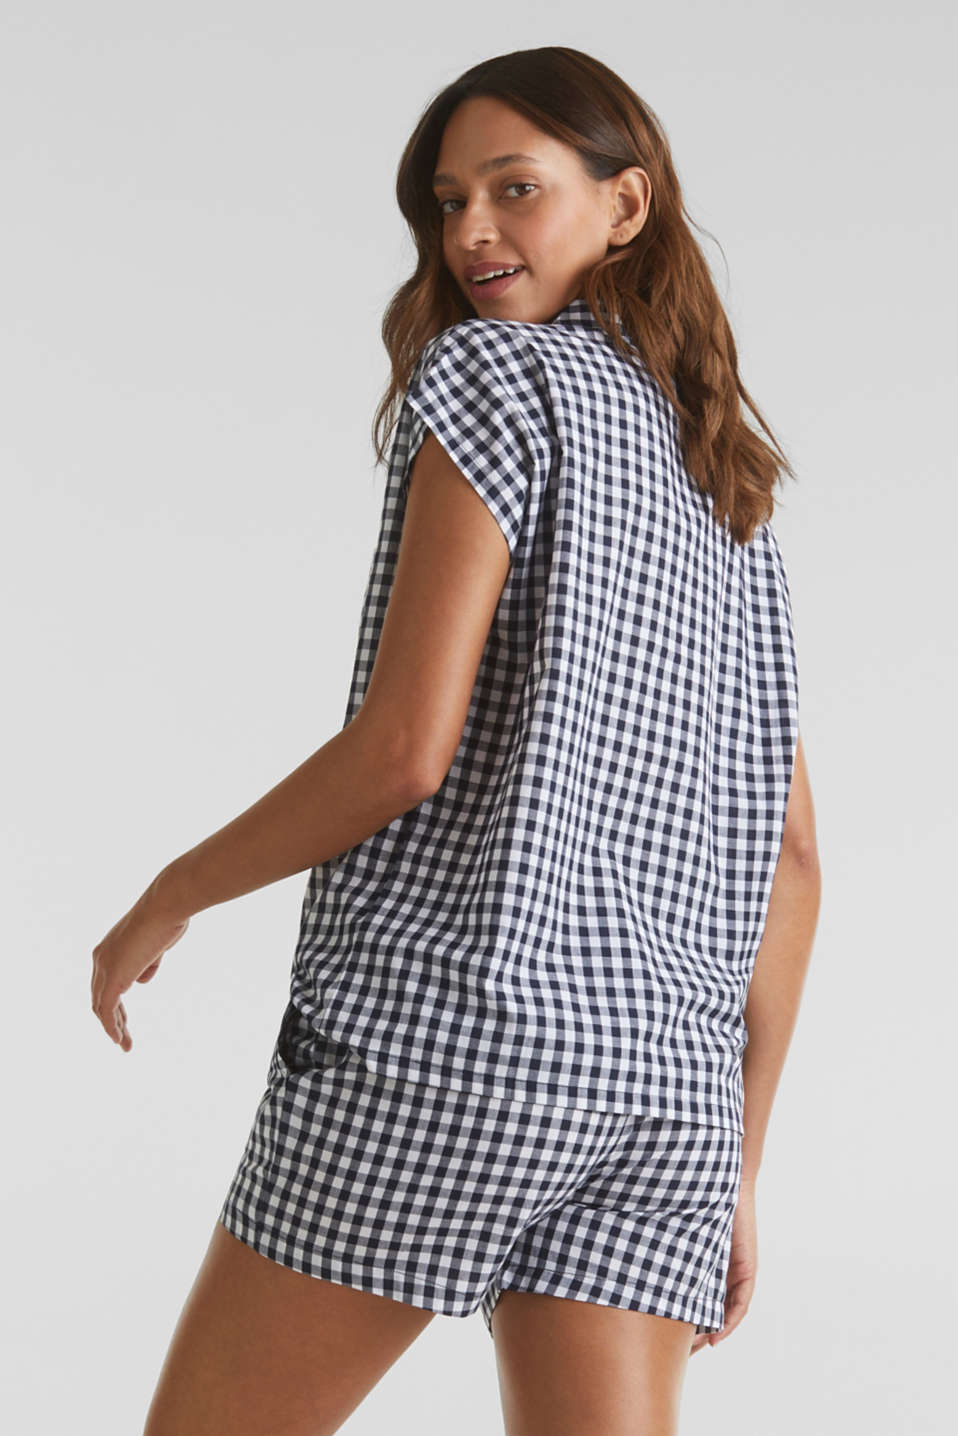 Woven pyjamas with checks, 100% cotton, NAVY 2, detail image number 1